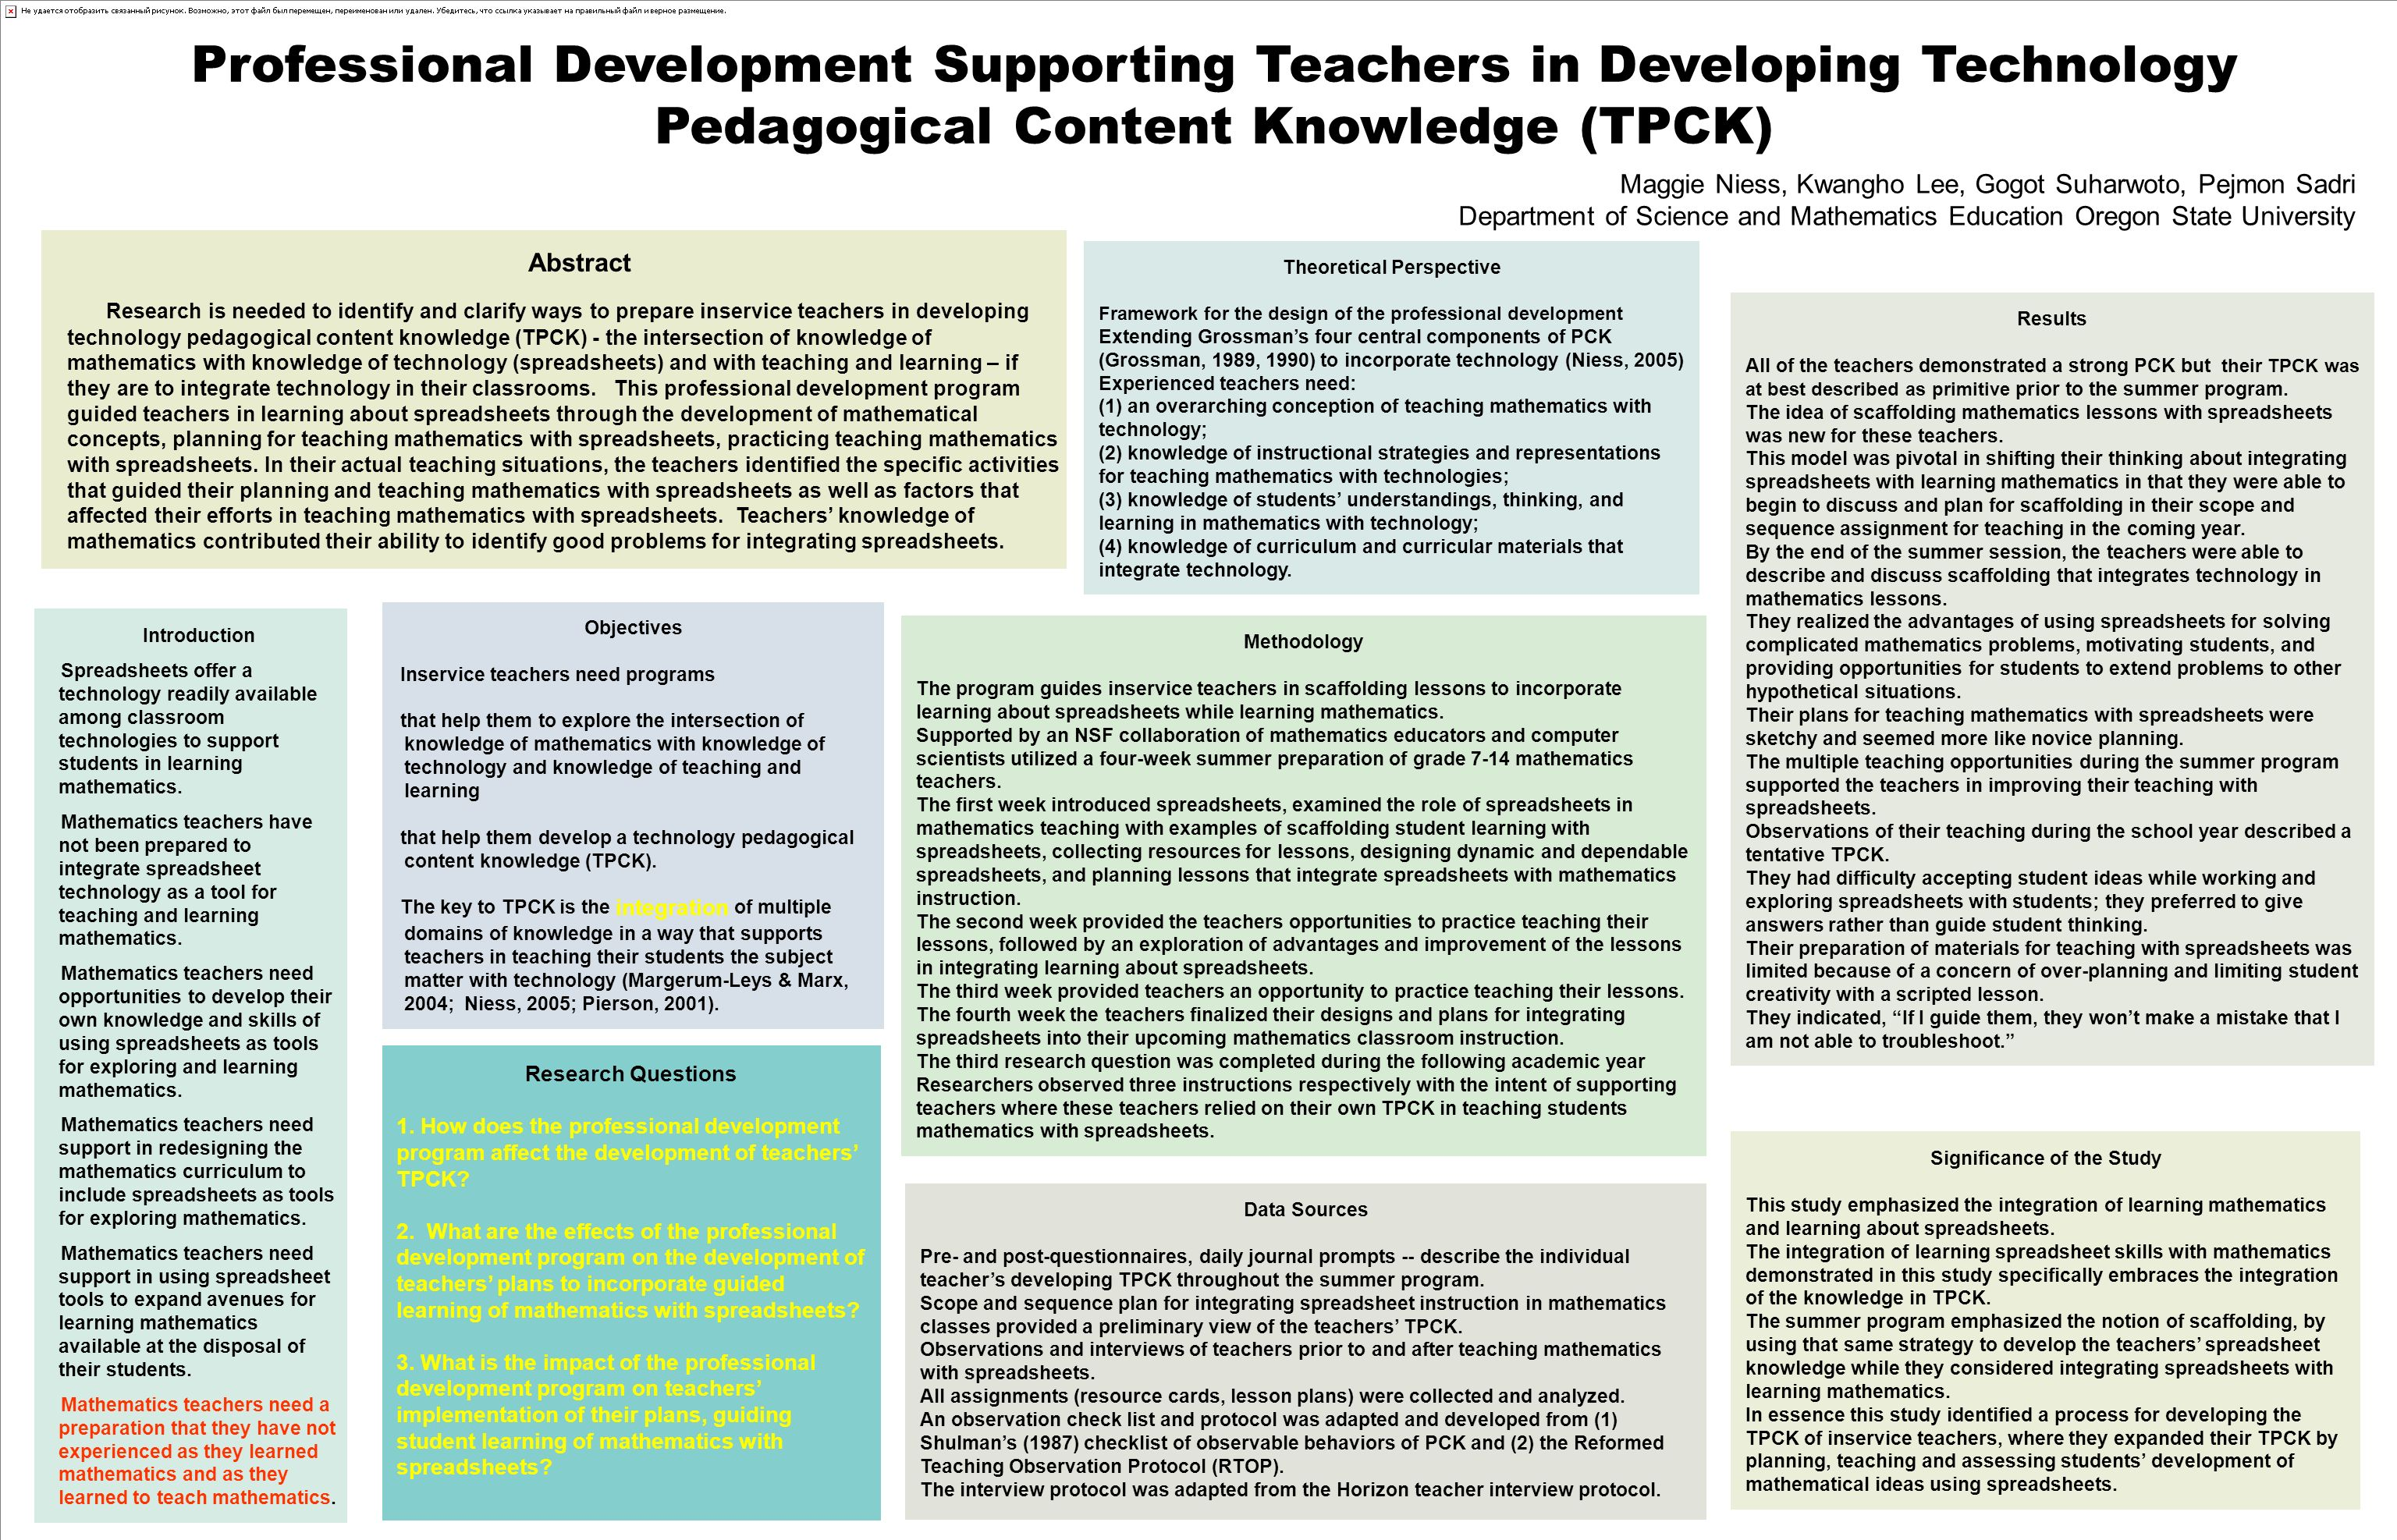 Professional Development Supporting Teachers in Developing Technology Pedagogical Content Knowledge (TPCK) Abstract Research is needed to identify and clarify ways to prepare inservice teachers in developing technology pedagogical content knowledge (TPCK) - the intersection of knowledge of mathematics with knowledge of technology (spreadsheets) and with teaching and learning – if they are to integrate technology in their classrooms.